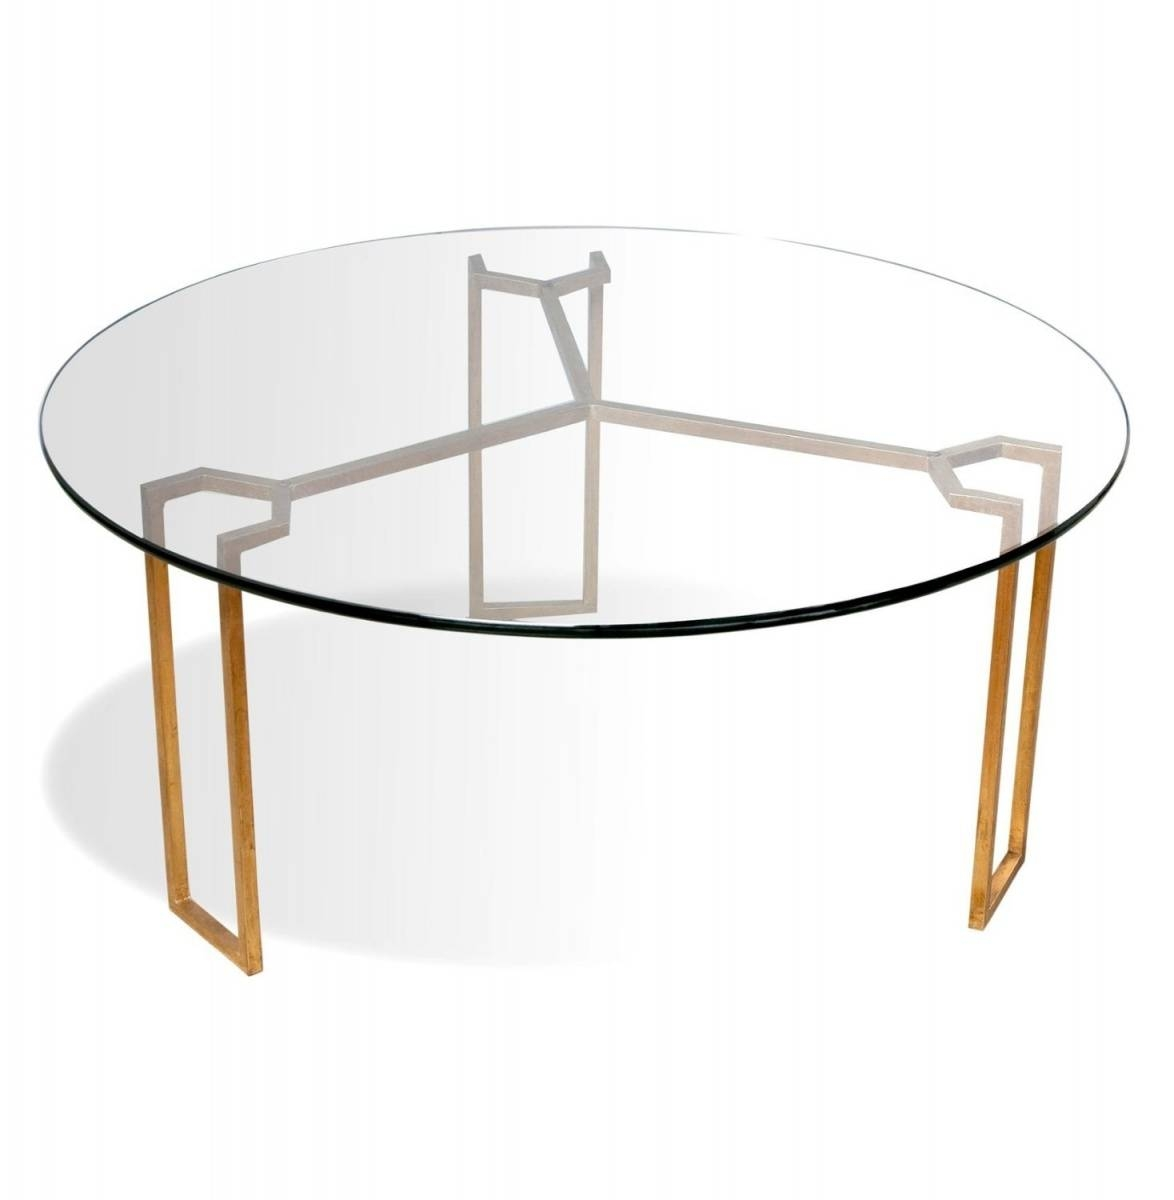 Coffee Table : Glass Round Coffee Tables Small Round Glass Coffee With Regard To Small Circle Coffee Tables (View 4 of 30)